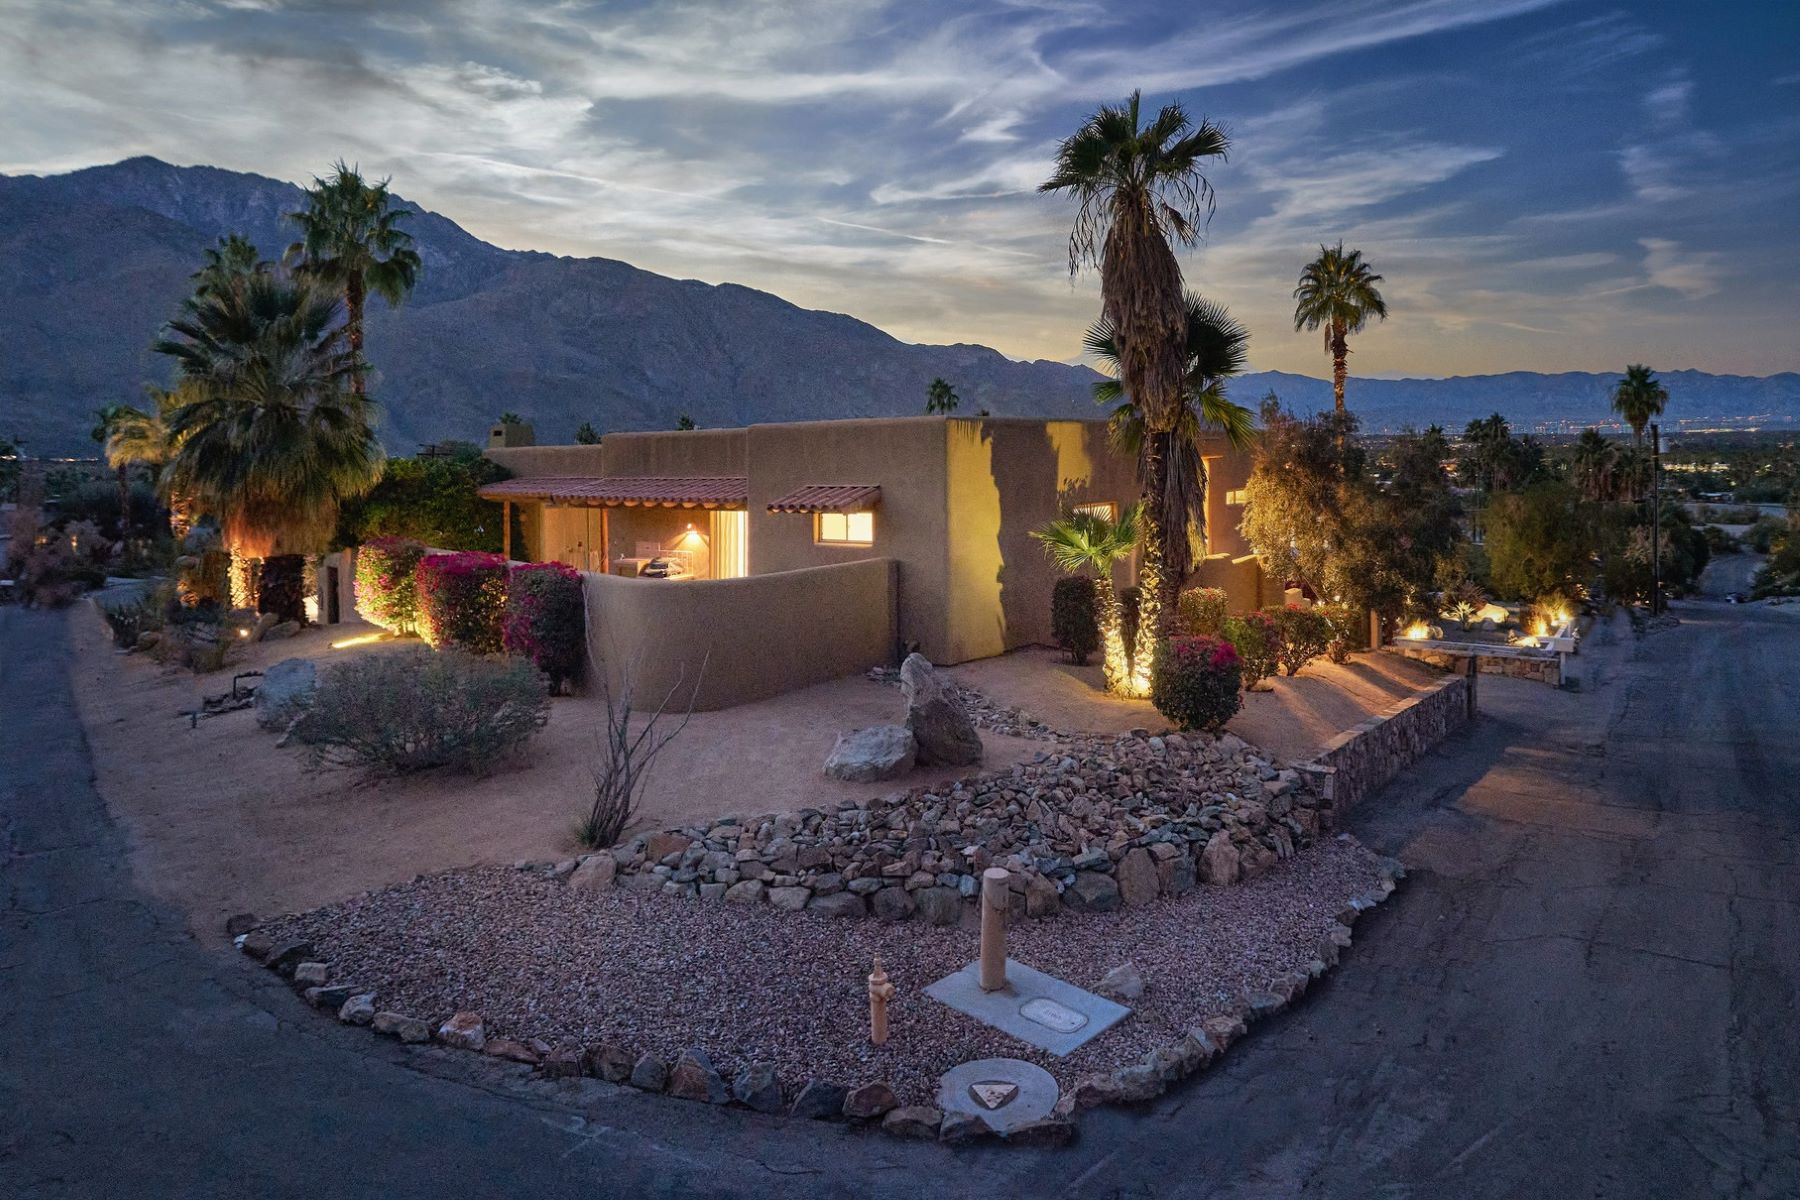 Single Family Homes for Sale at 2380 East Smokewood Avenue Palm Springs, California 92264 United States